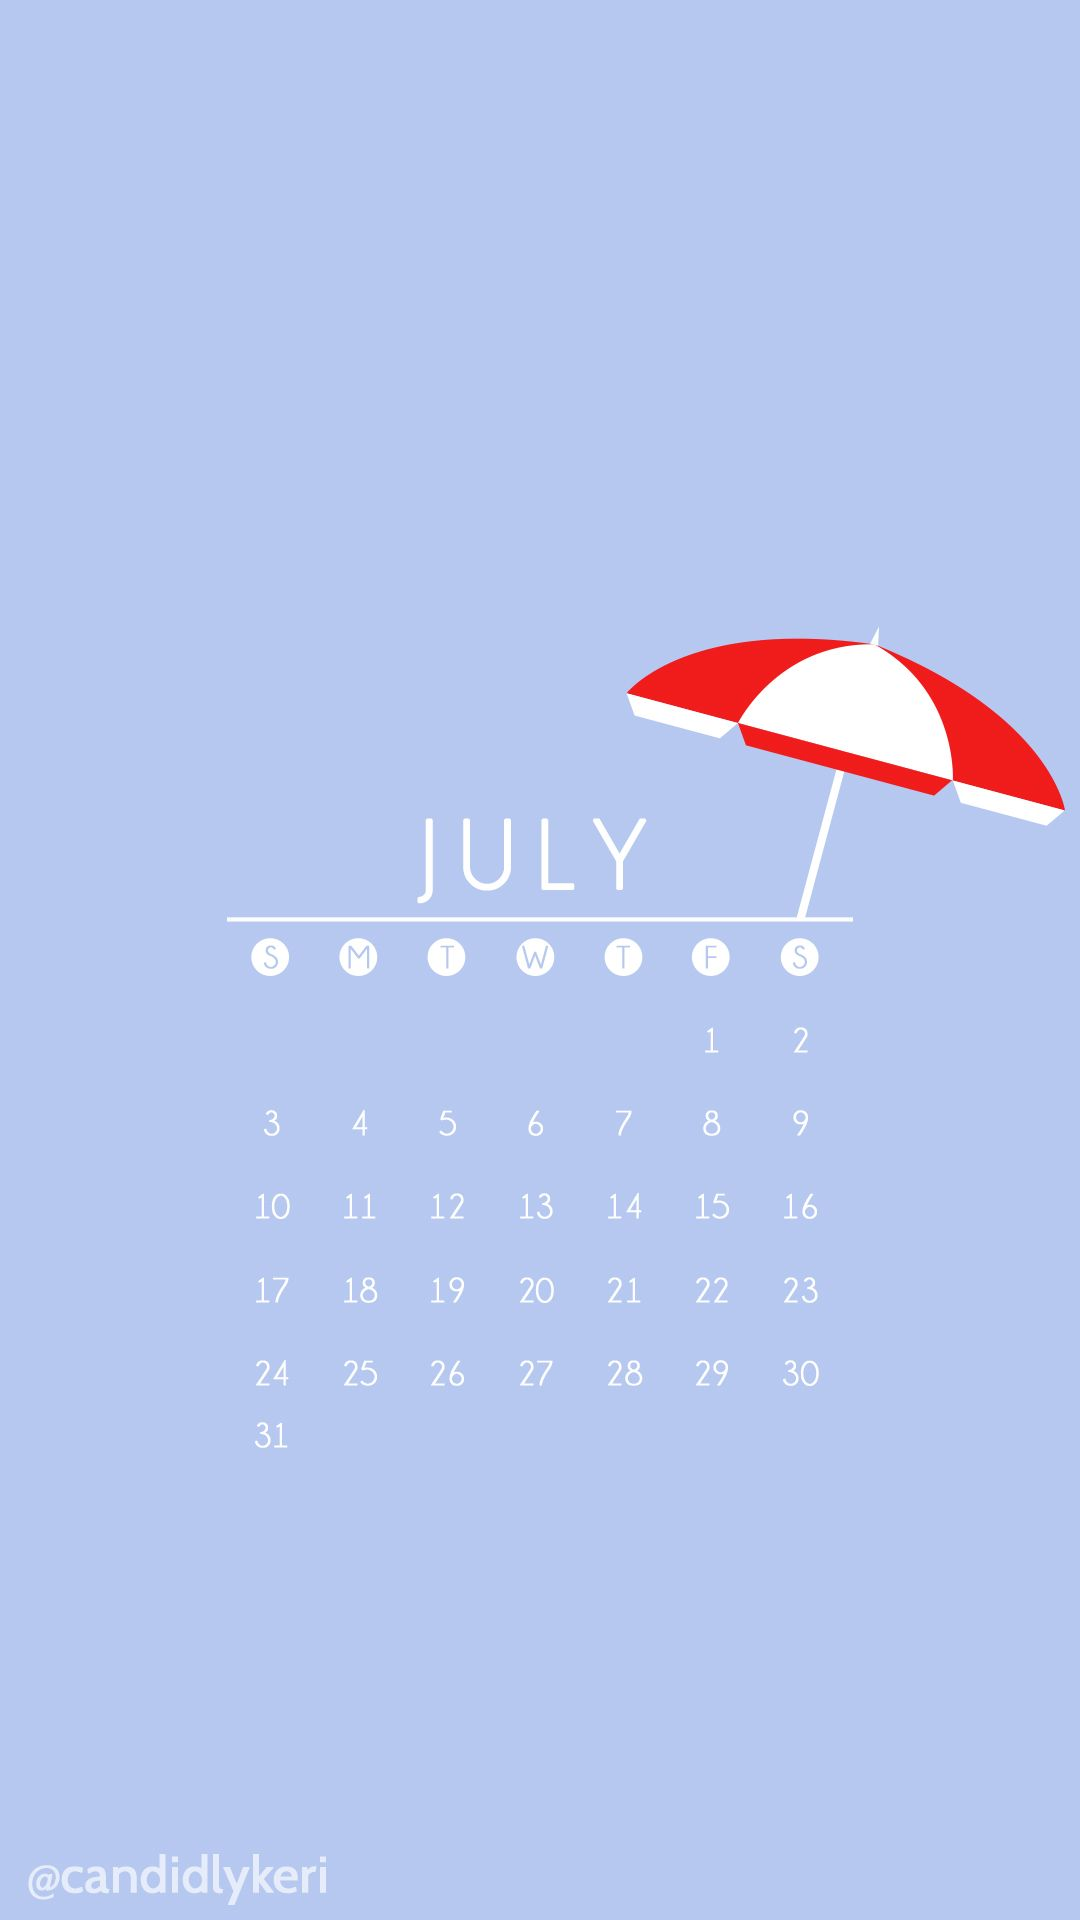 Blue background red umbrella cute summer july 2016 calendar blue background red umbrella cute summer july 2016 calendar wallpaper free download for iphone android or desktop background on the blog pinterest voltagebd Gallery